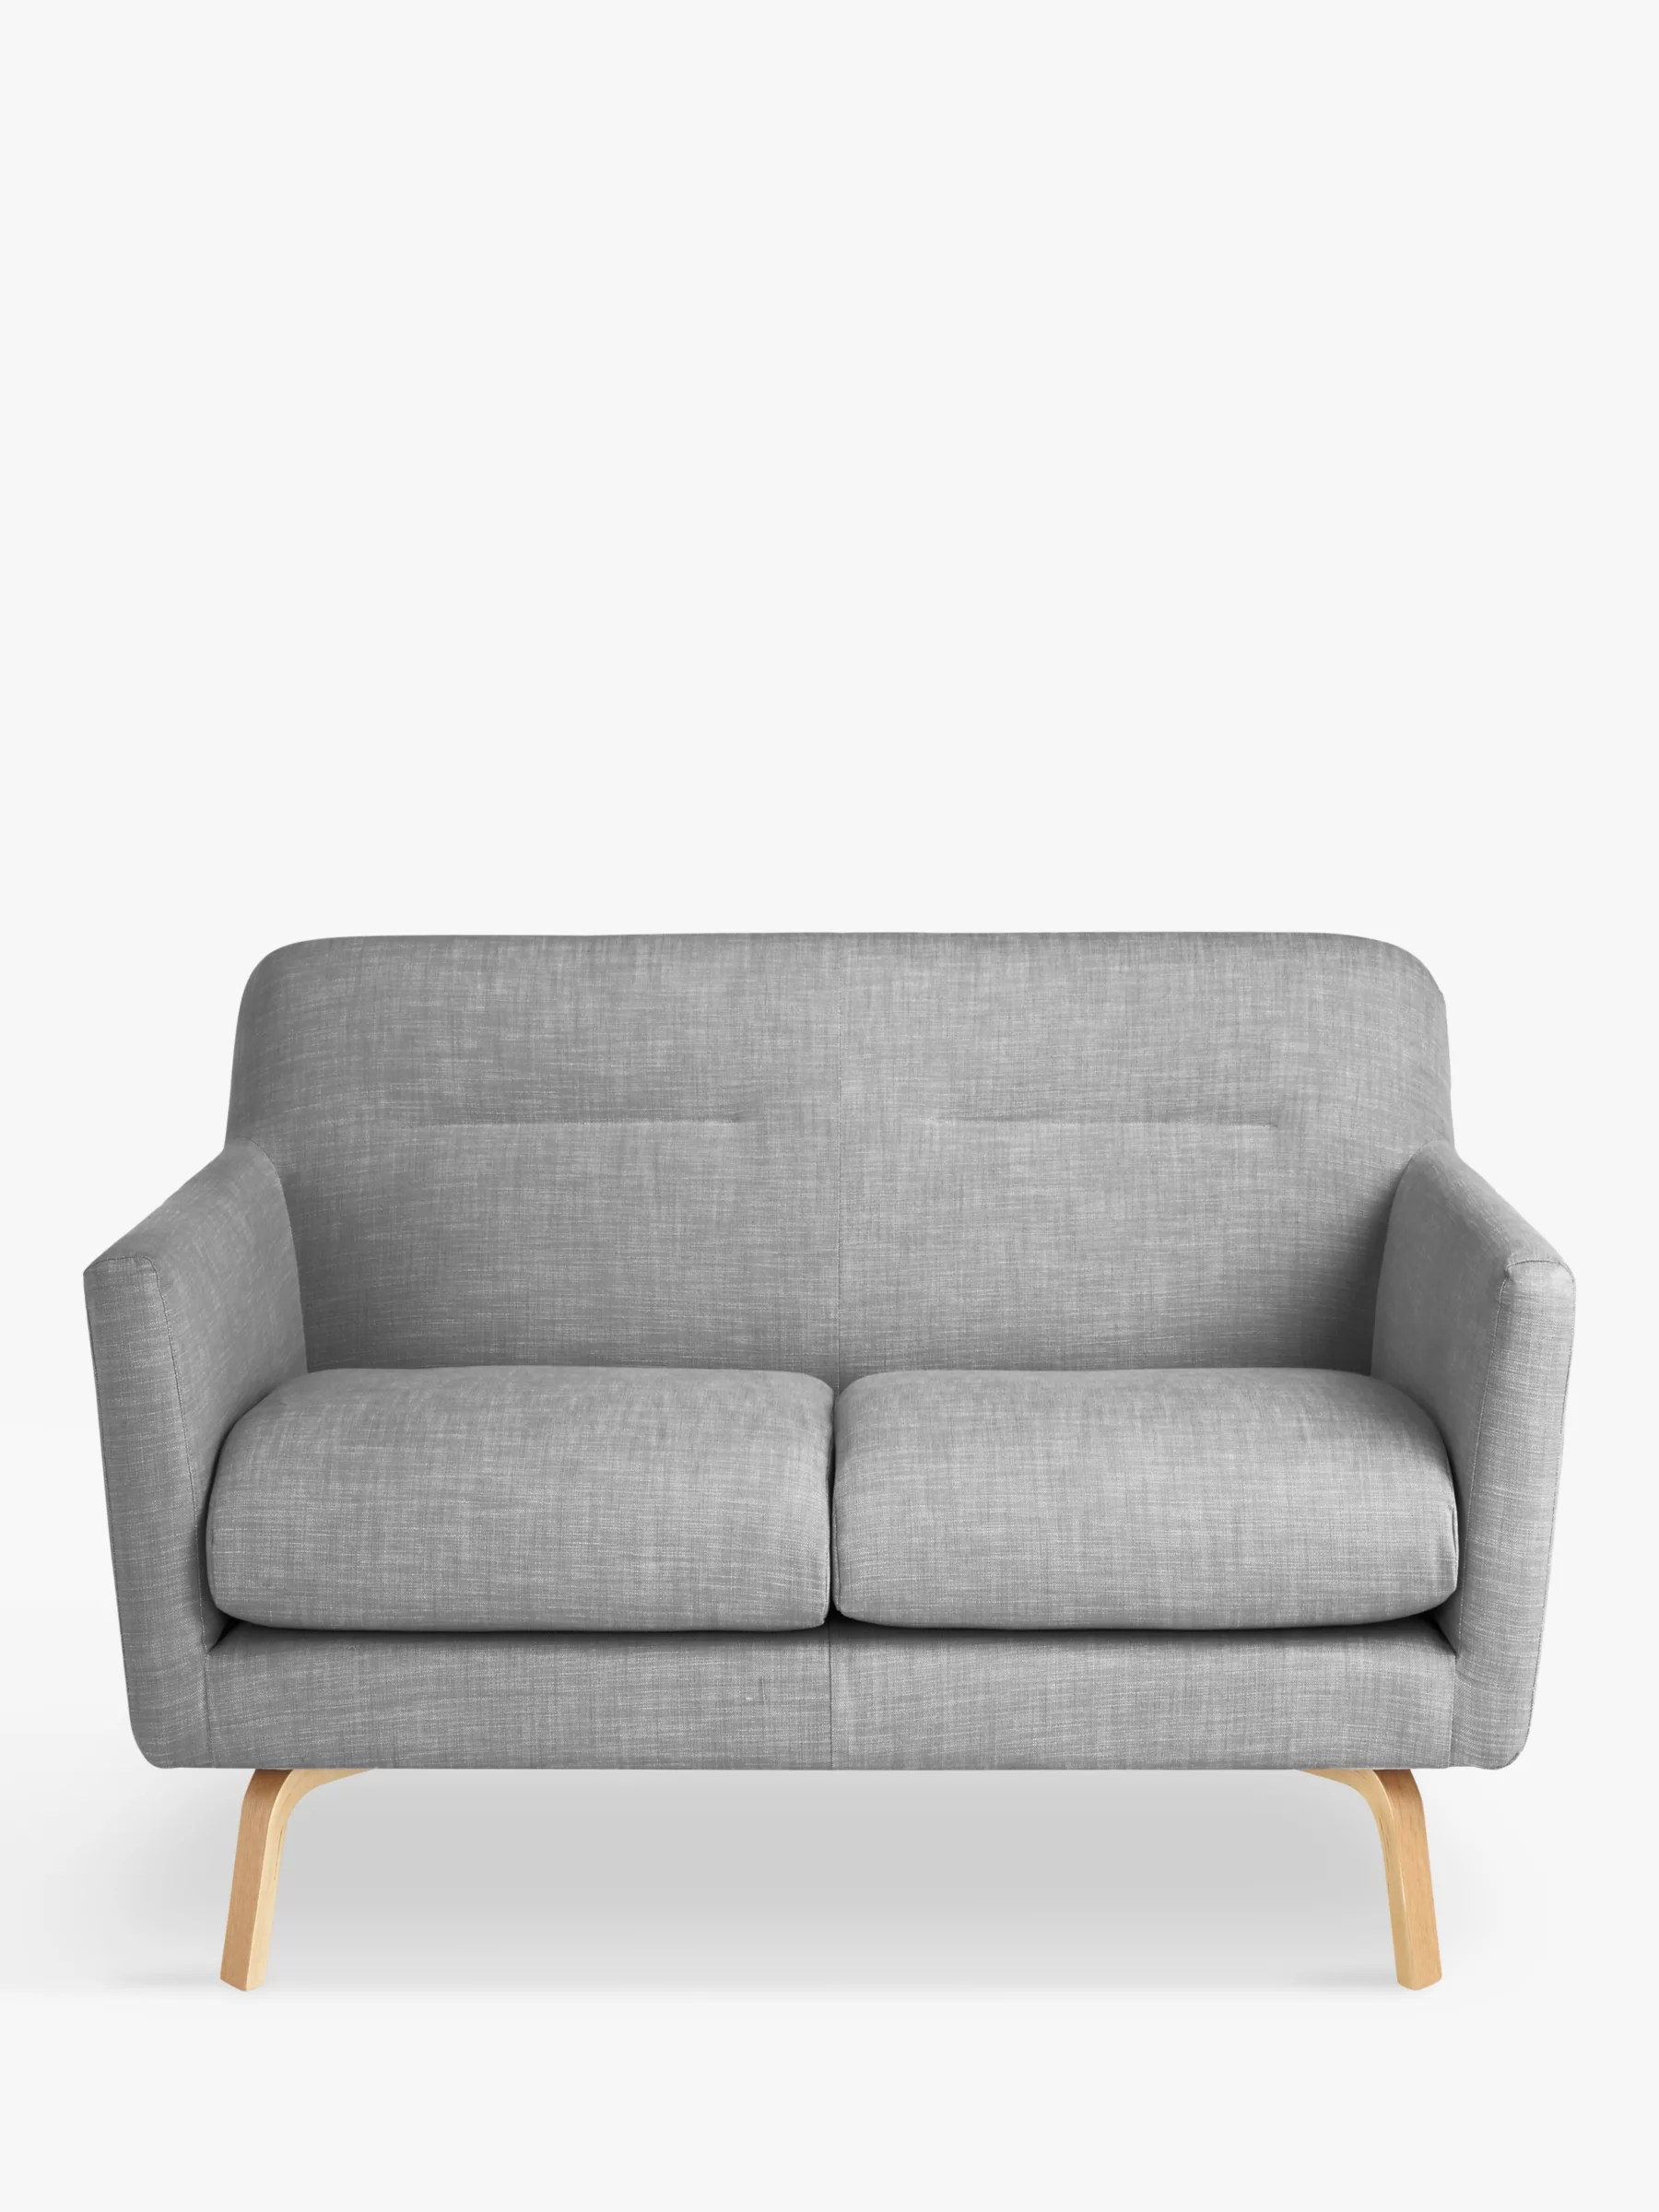 Sofa Online Purchase House By John Lewis Archie Ii Small 2 Seater Sofa